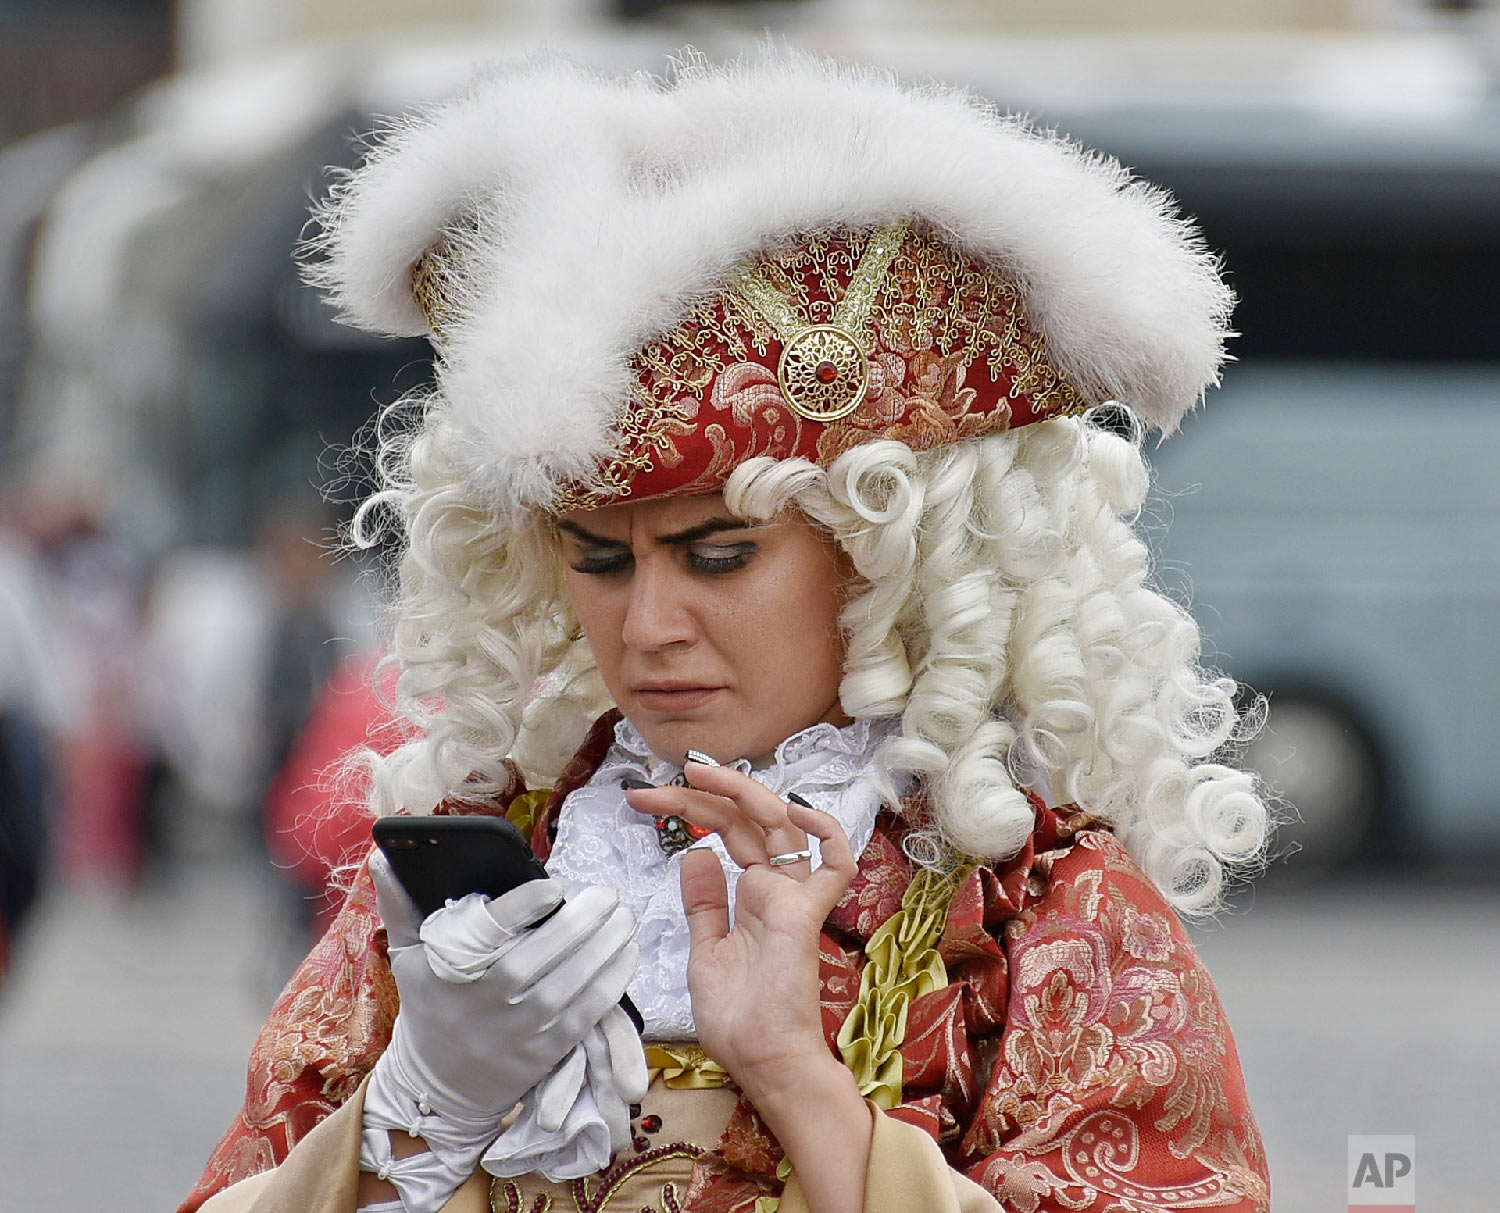 A woman dressed in a historic costume watches her smartphone in front of the Winter Palace during the 2018 soccer World Cup in St. Petersburg, Russia on Sunday, July 8, 2018. (AP Photo/Martin Meissner)